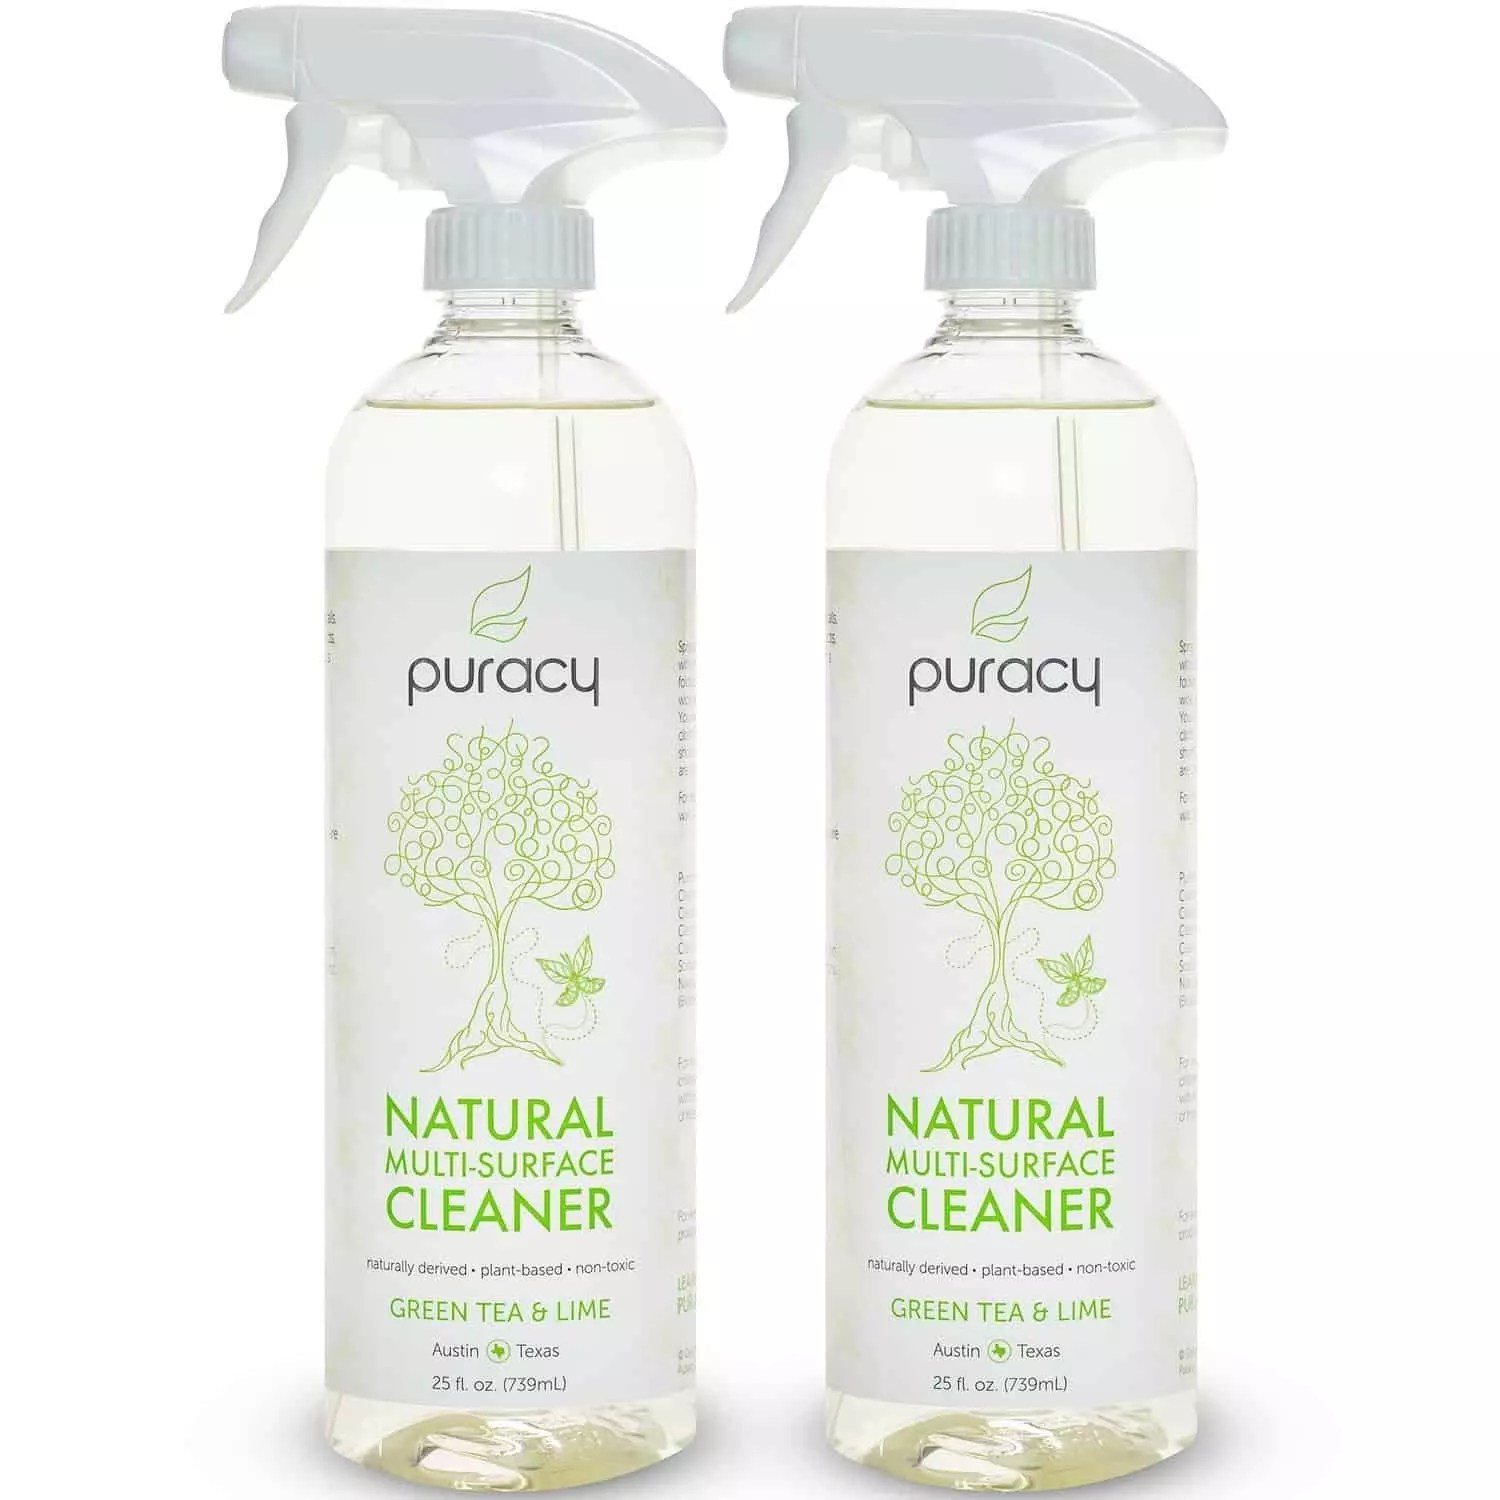 Picturesque Shower Cleaner Cleaning Supplies Laundry Stain Cleaning Products Tile S Cleaning Products bark post Best Cleaning Products